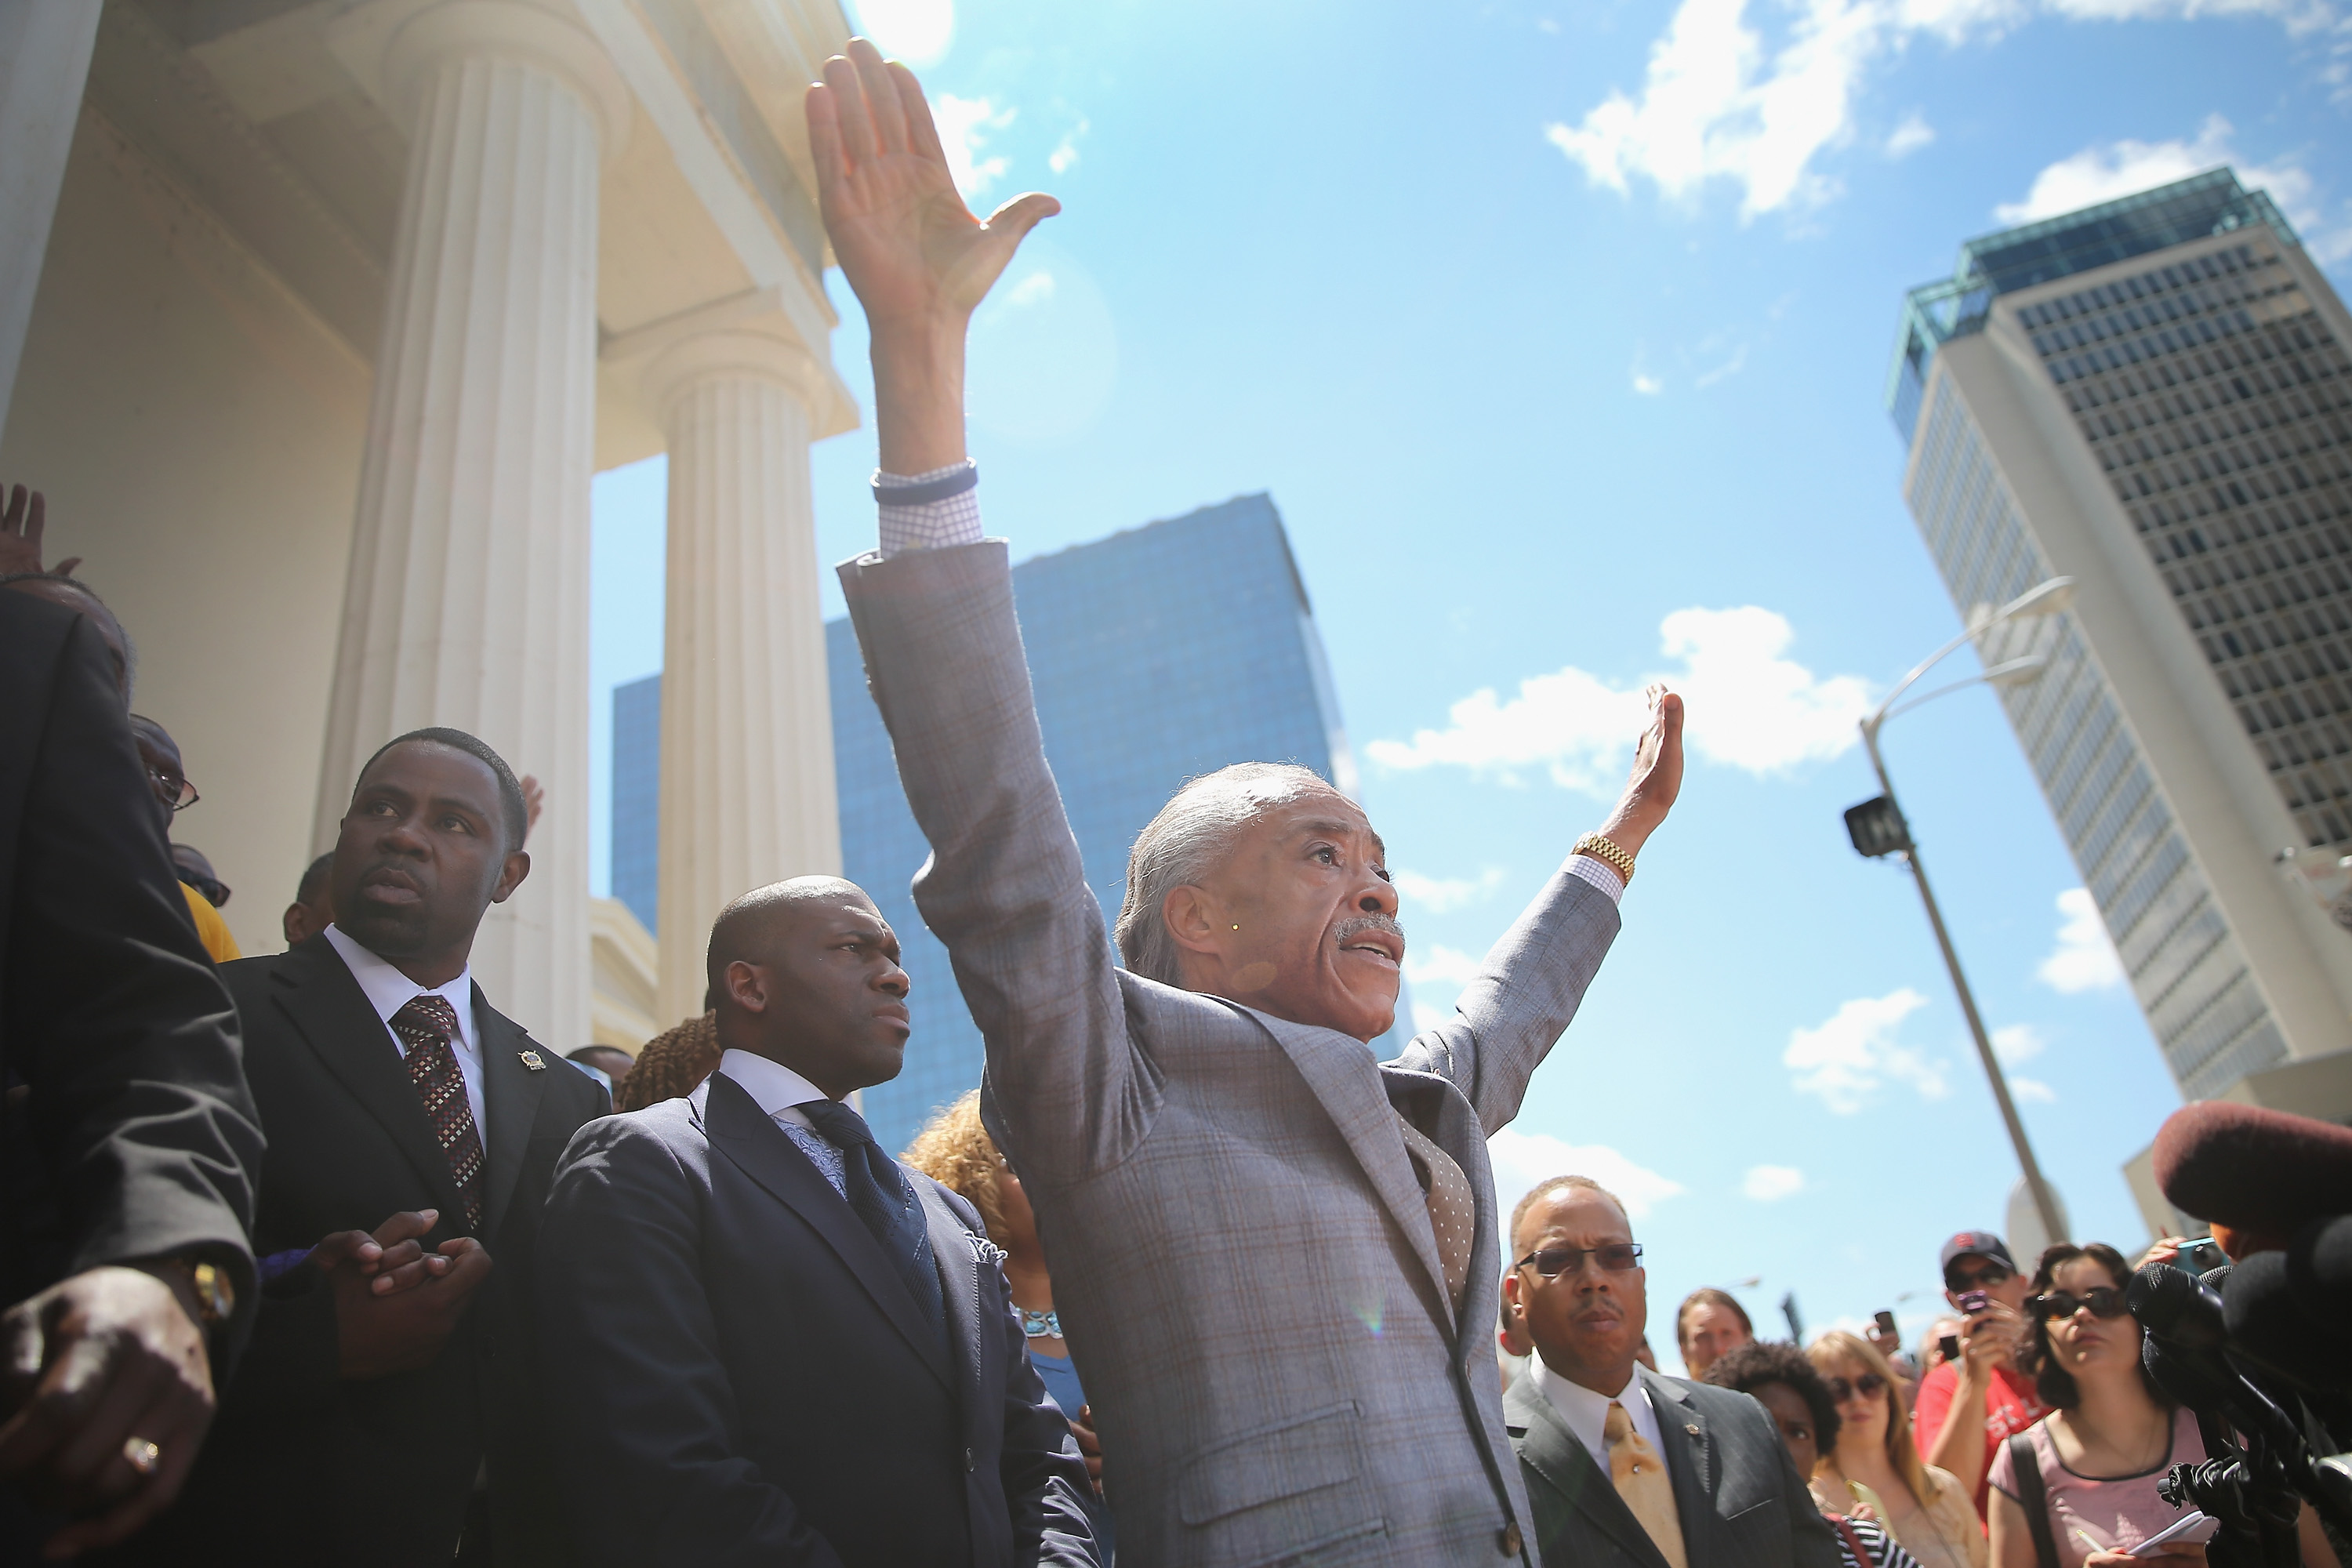 Civil rights leader Rev. Al Sharpton speaks about the killing of teenager Michael Brown at a press conference held on the steps of the old courthouse in St. Louis on Aug. 12, 2014.